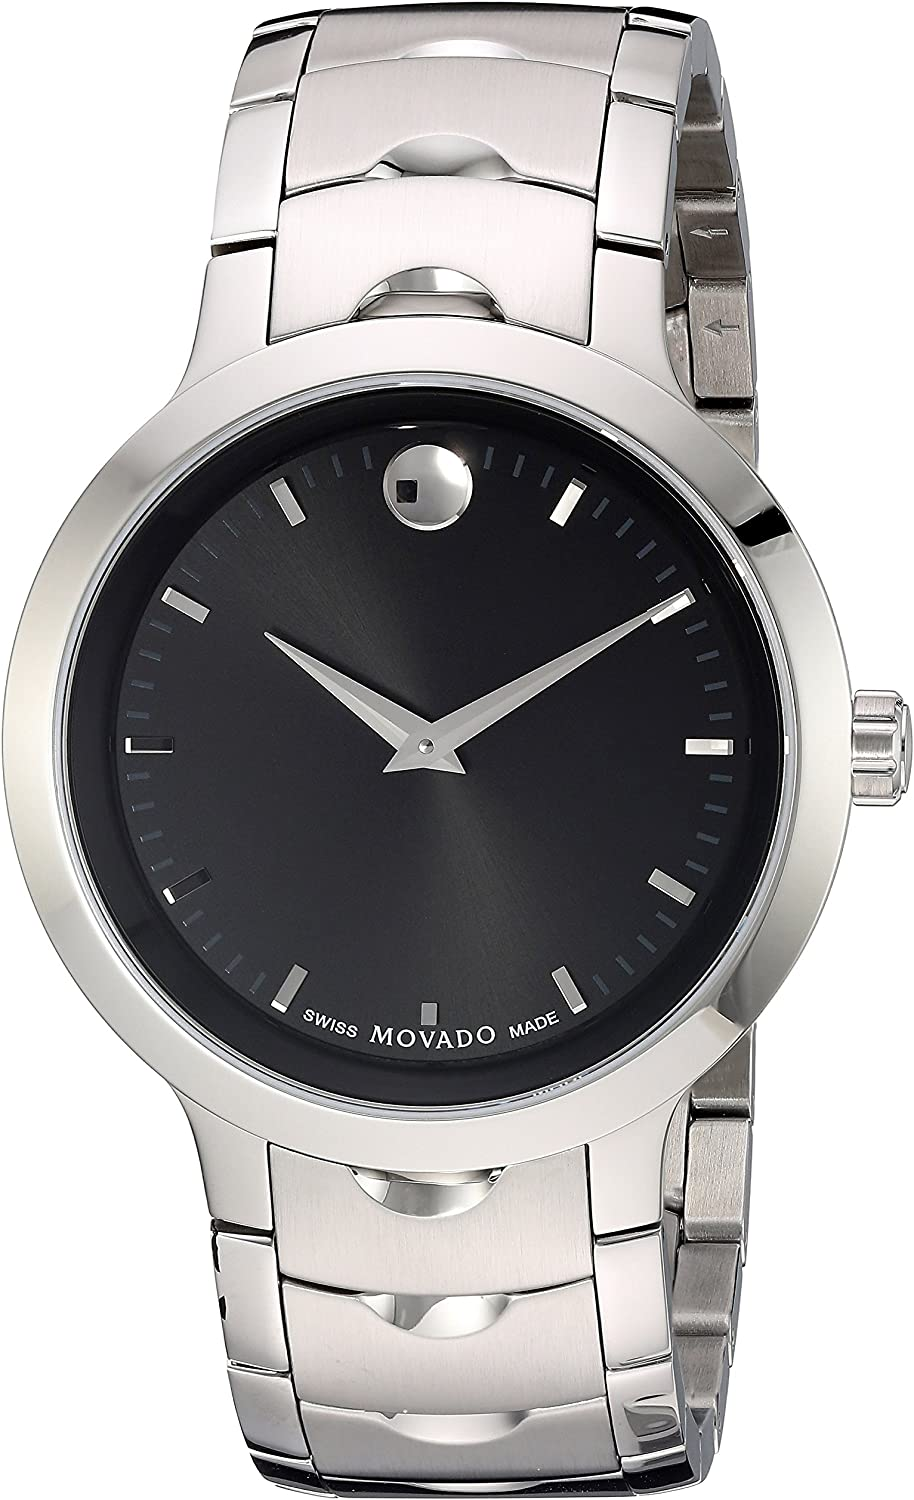 Movado Men s Swiss Quartz Stainless Steel Watch, Color Silver-Toned Model 0607041